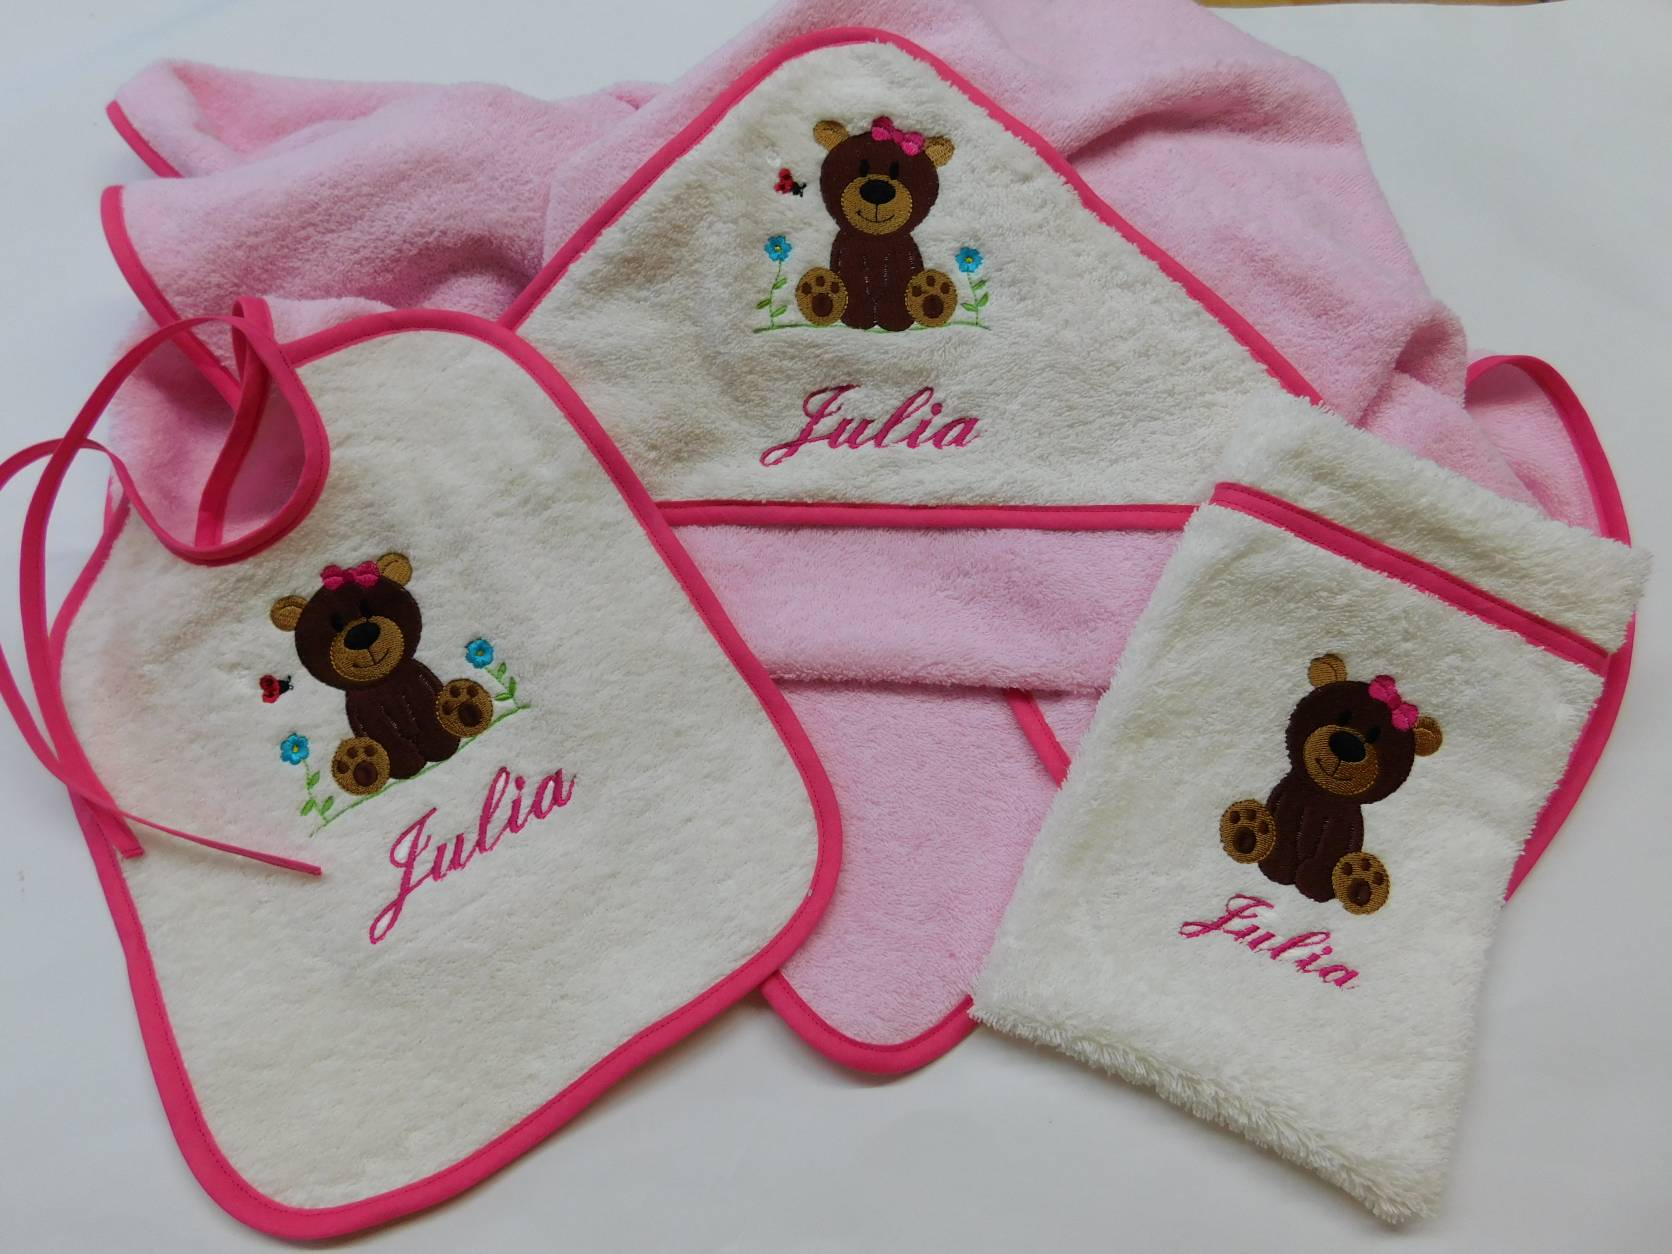 Set 5 rosa-ecru-pink Motiv 01-12-001 + Name